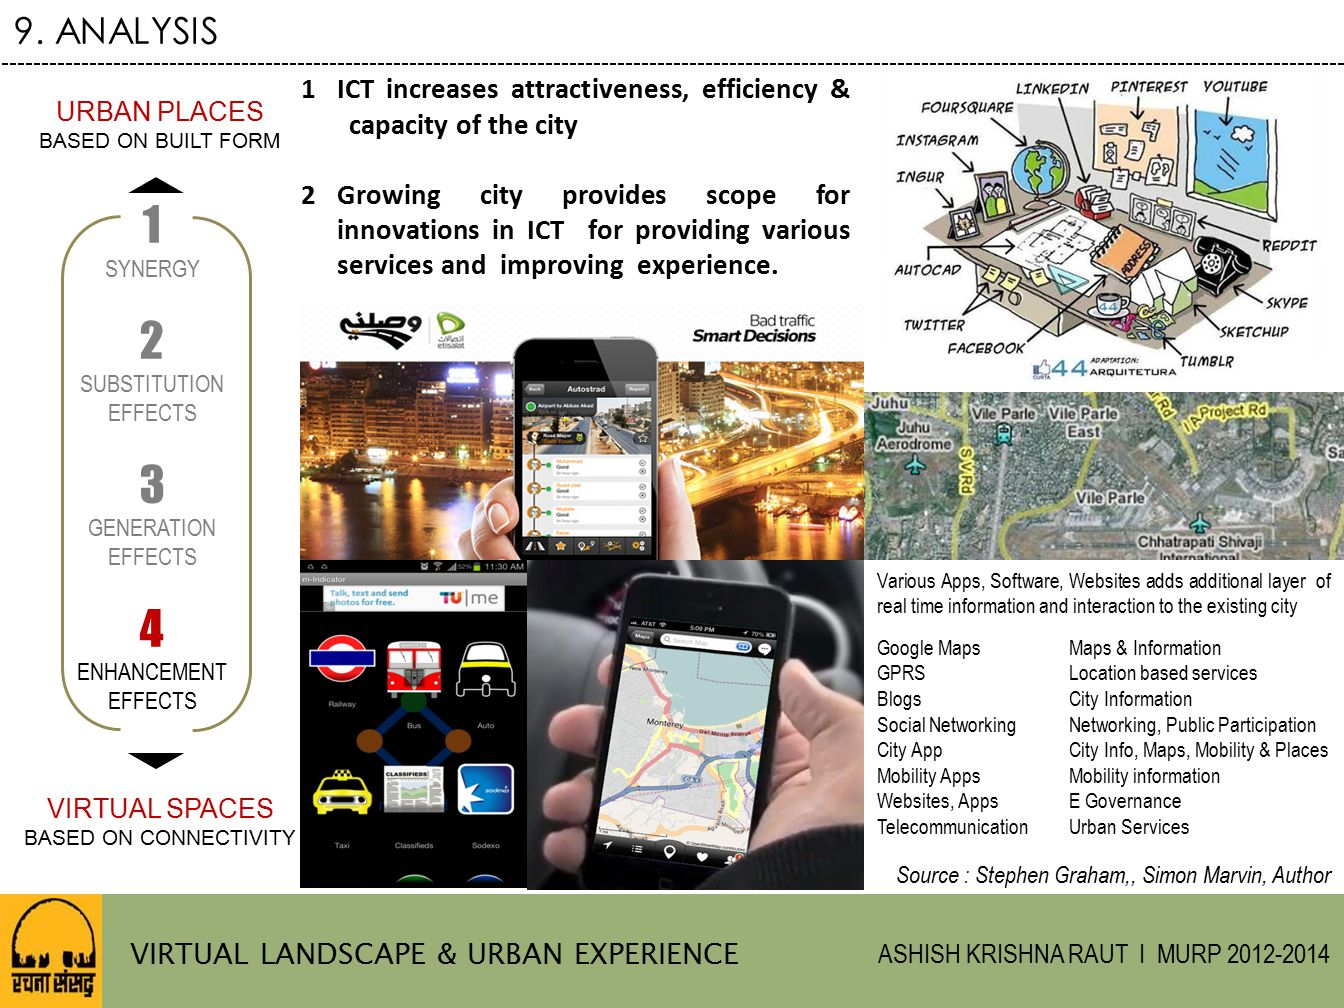 9. ANALYSIS ICT increases attractiveness, efficiency & capacity of the city.